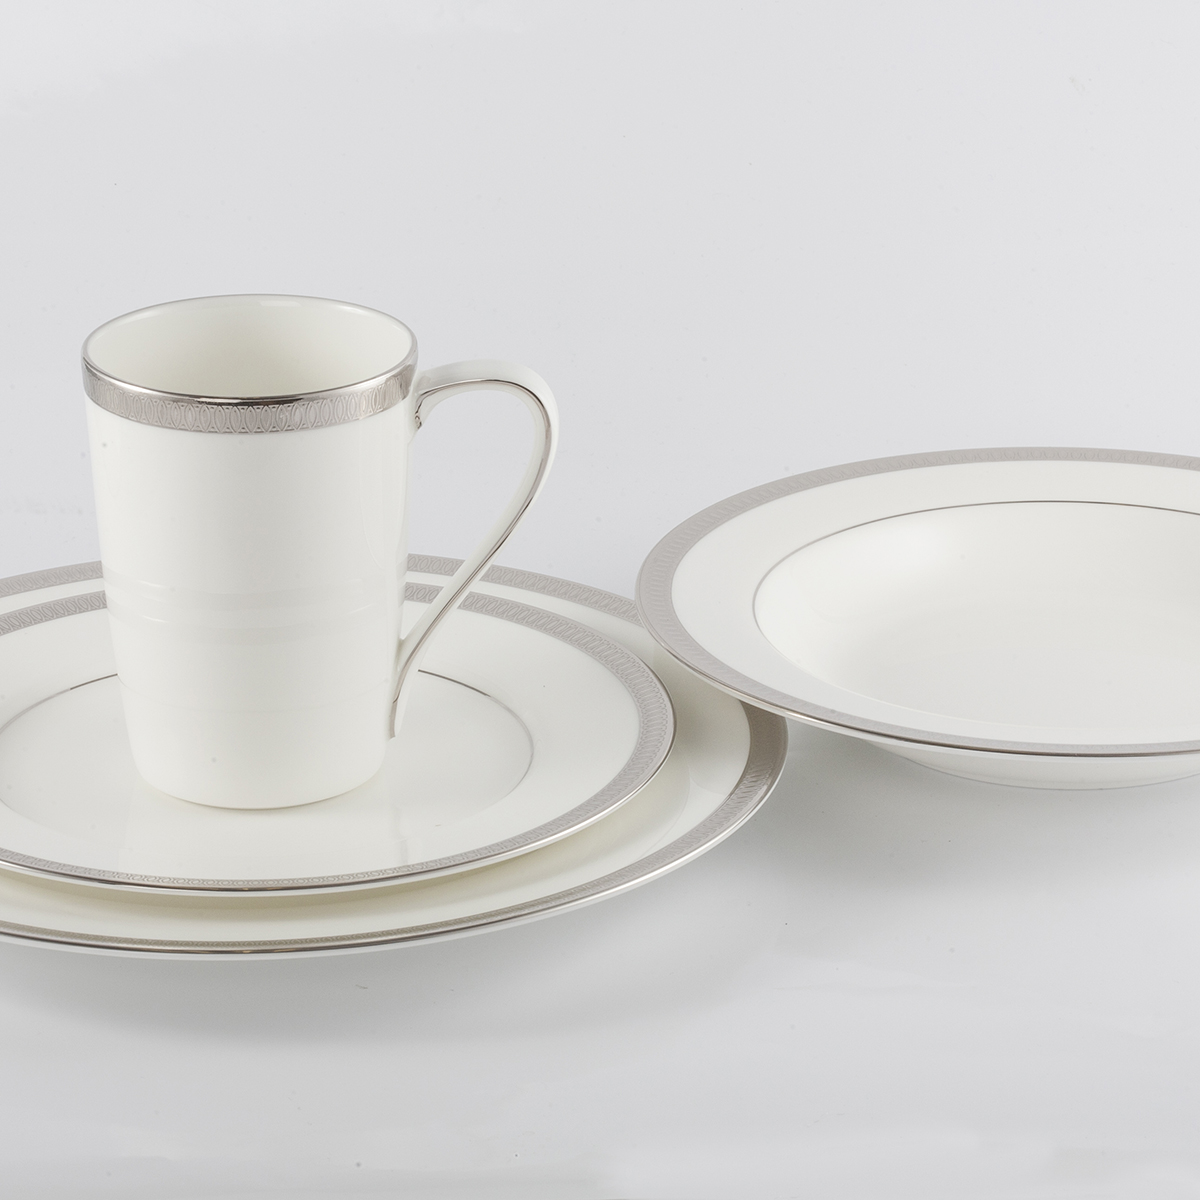 5 Piece Place Setting - Rim Soup Bowl, Imperial Cup